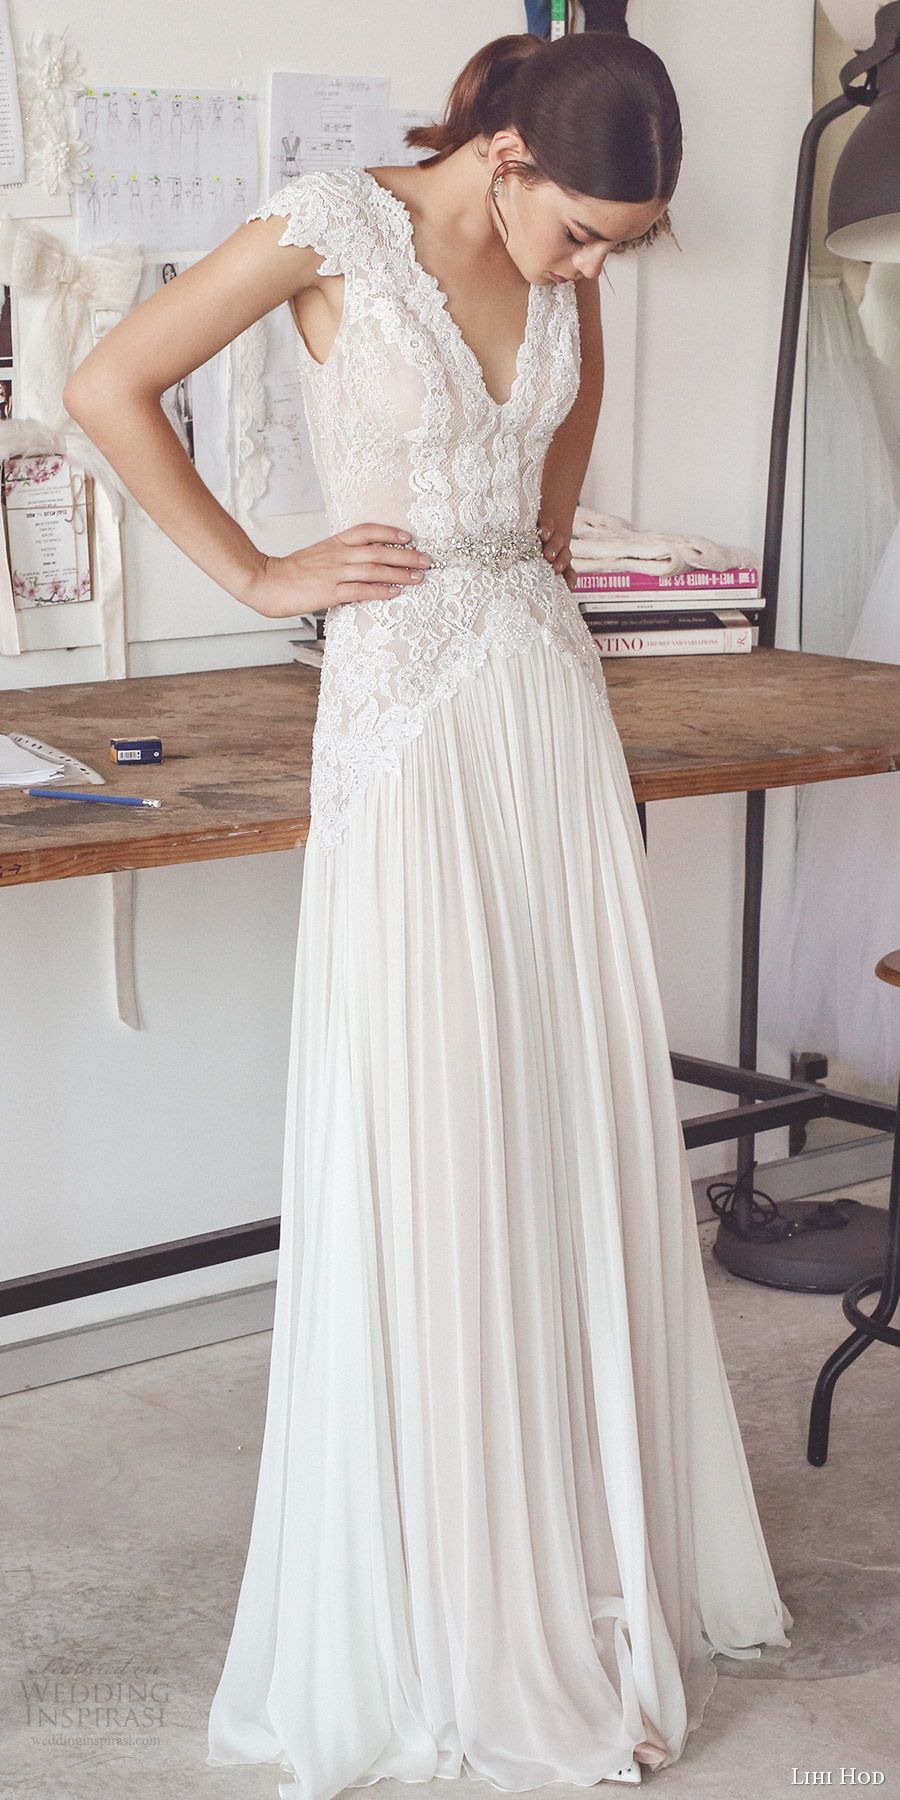 87cd3f965ed lihi hod 2017 bridal cap sleeves v neck heavily embellished bodice pleated  skirt elegant modified a line wedding dress low back sweep train (aline) fv